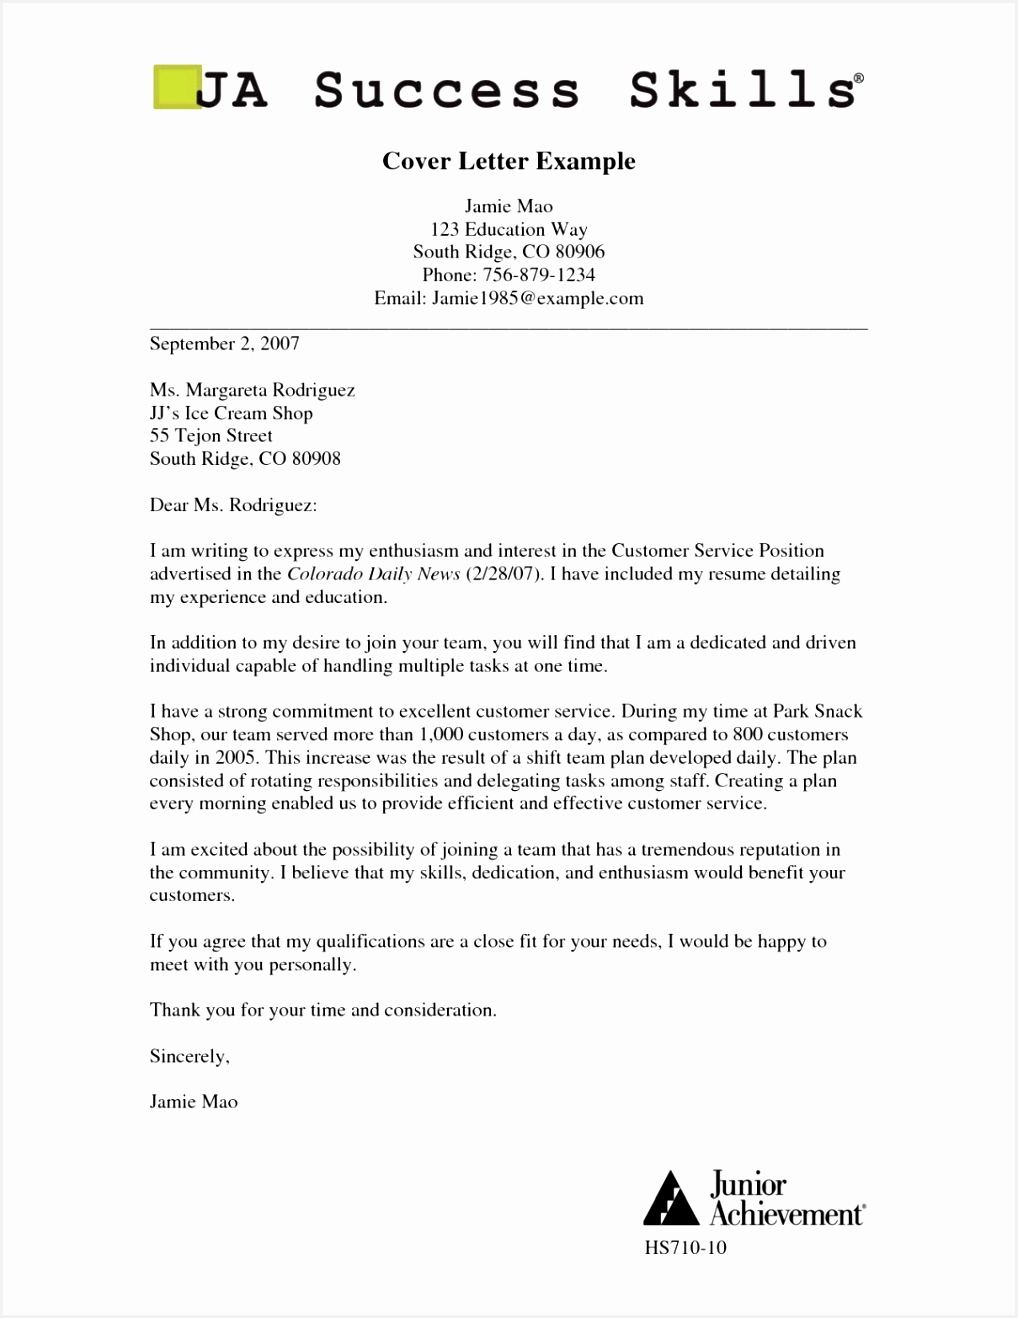 Increase Letter Template Covering Letter Structure 27 Samples Cover Letters for Job Best Od 13181018rsmrt